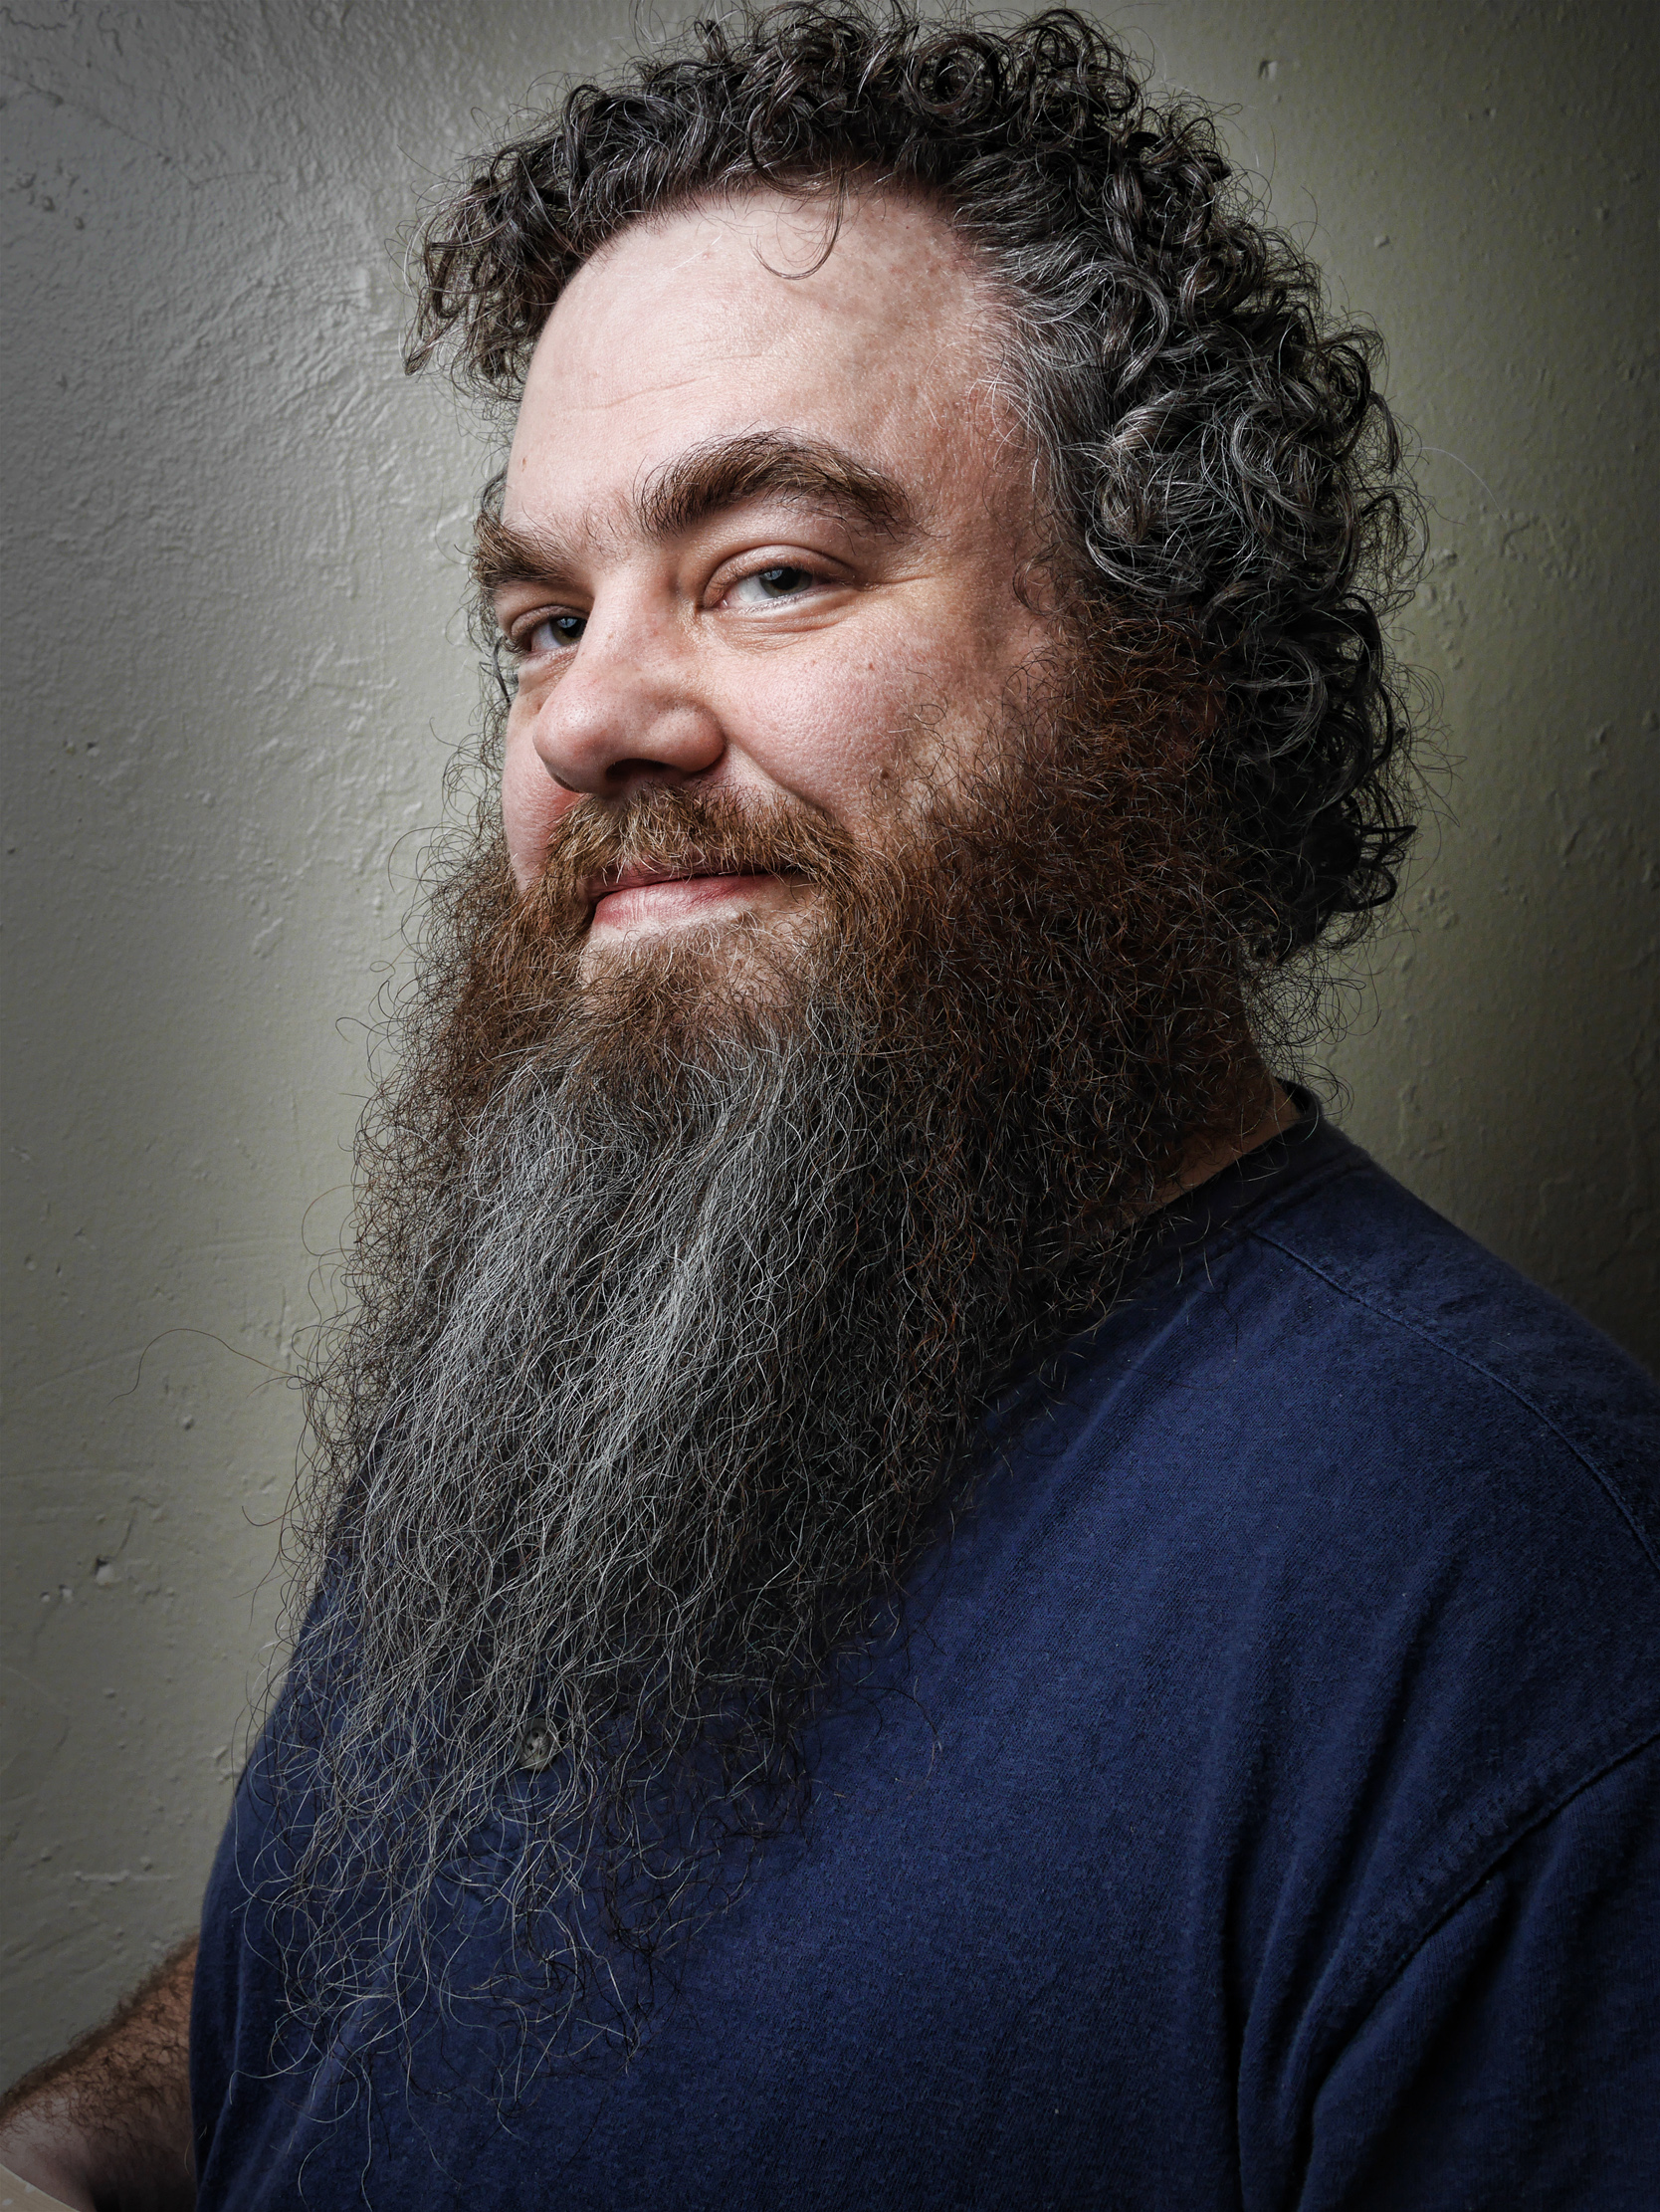 Patrick Rothfuss   Kingkiller Chronicle Wiki   Fandom on miller map, marshall map, martin map, russin map, pierce map, brown map,